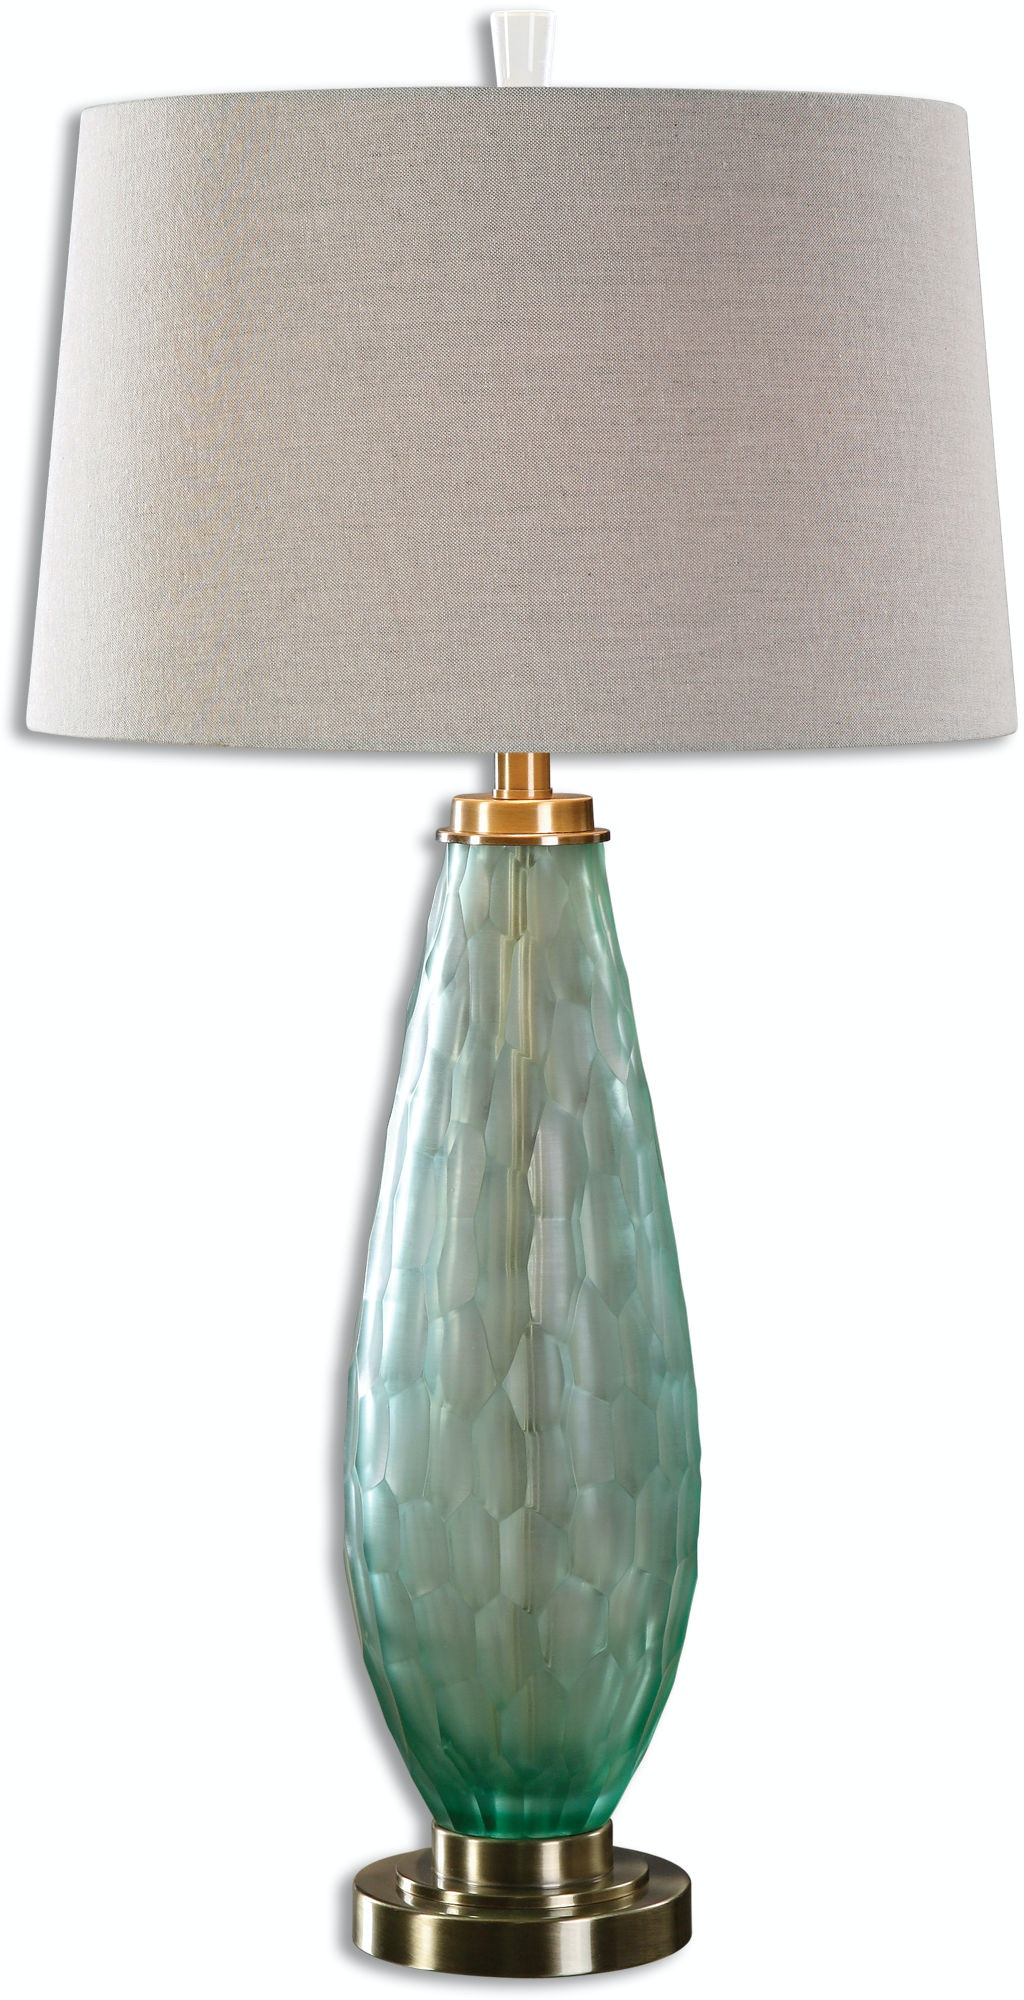 Uttermost Lamps And Lighting Lenado Sea Green Glass Table Lamp 27003